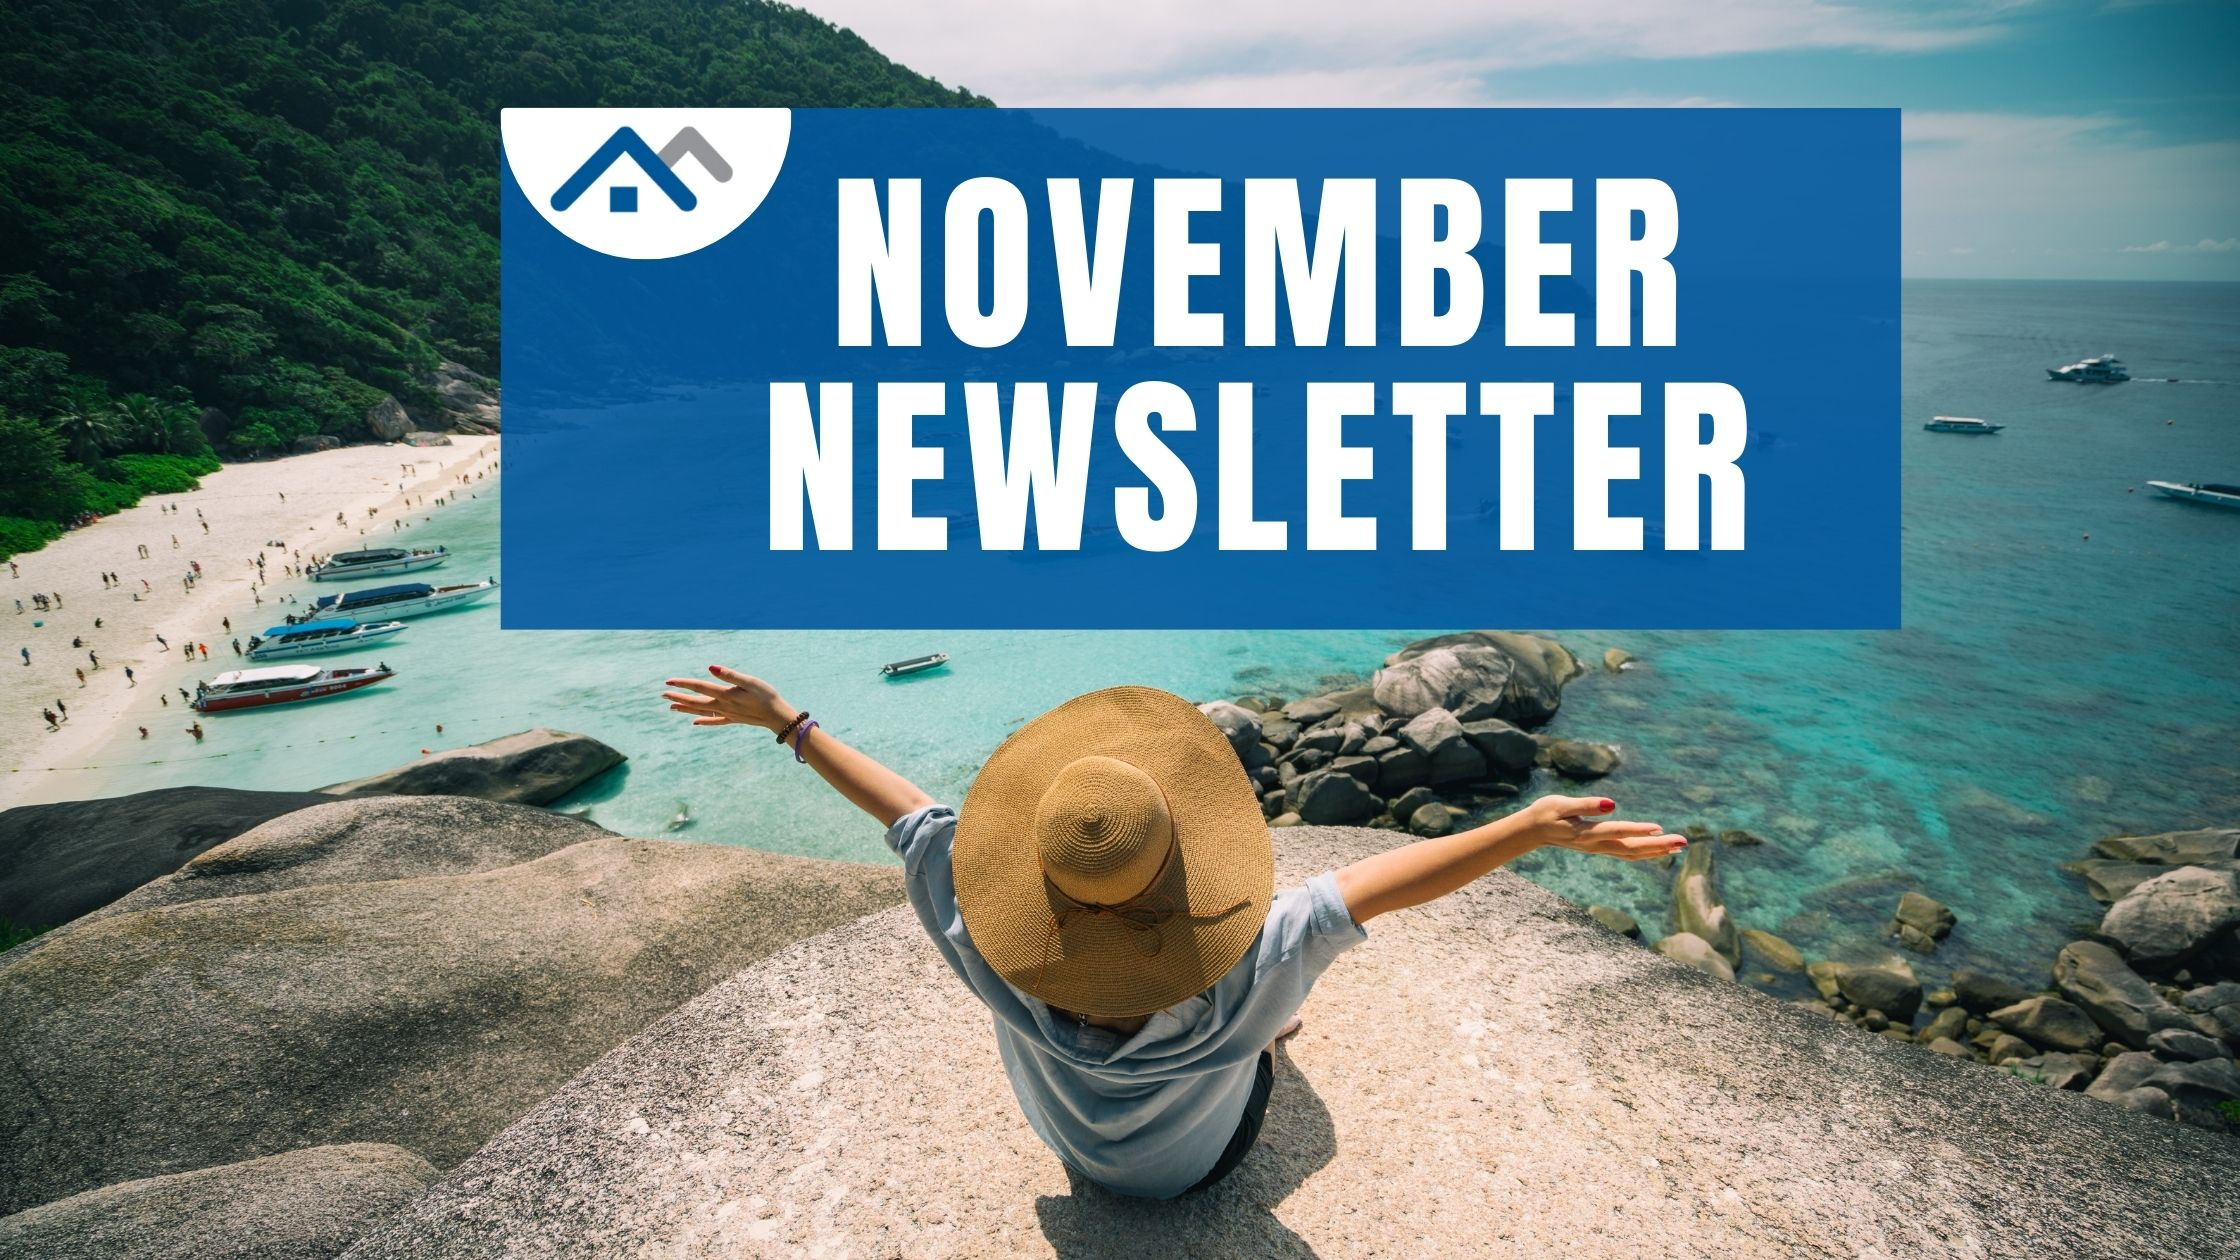 Our November Newsletter